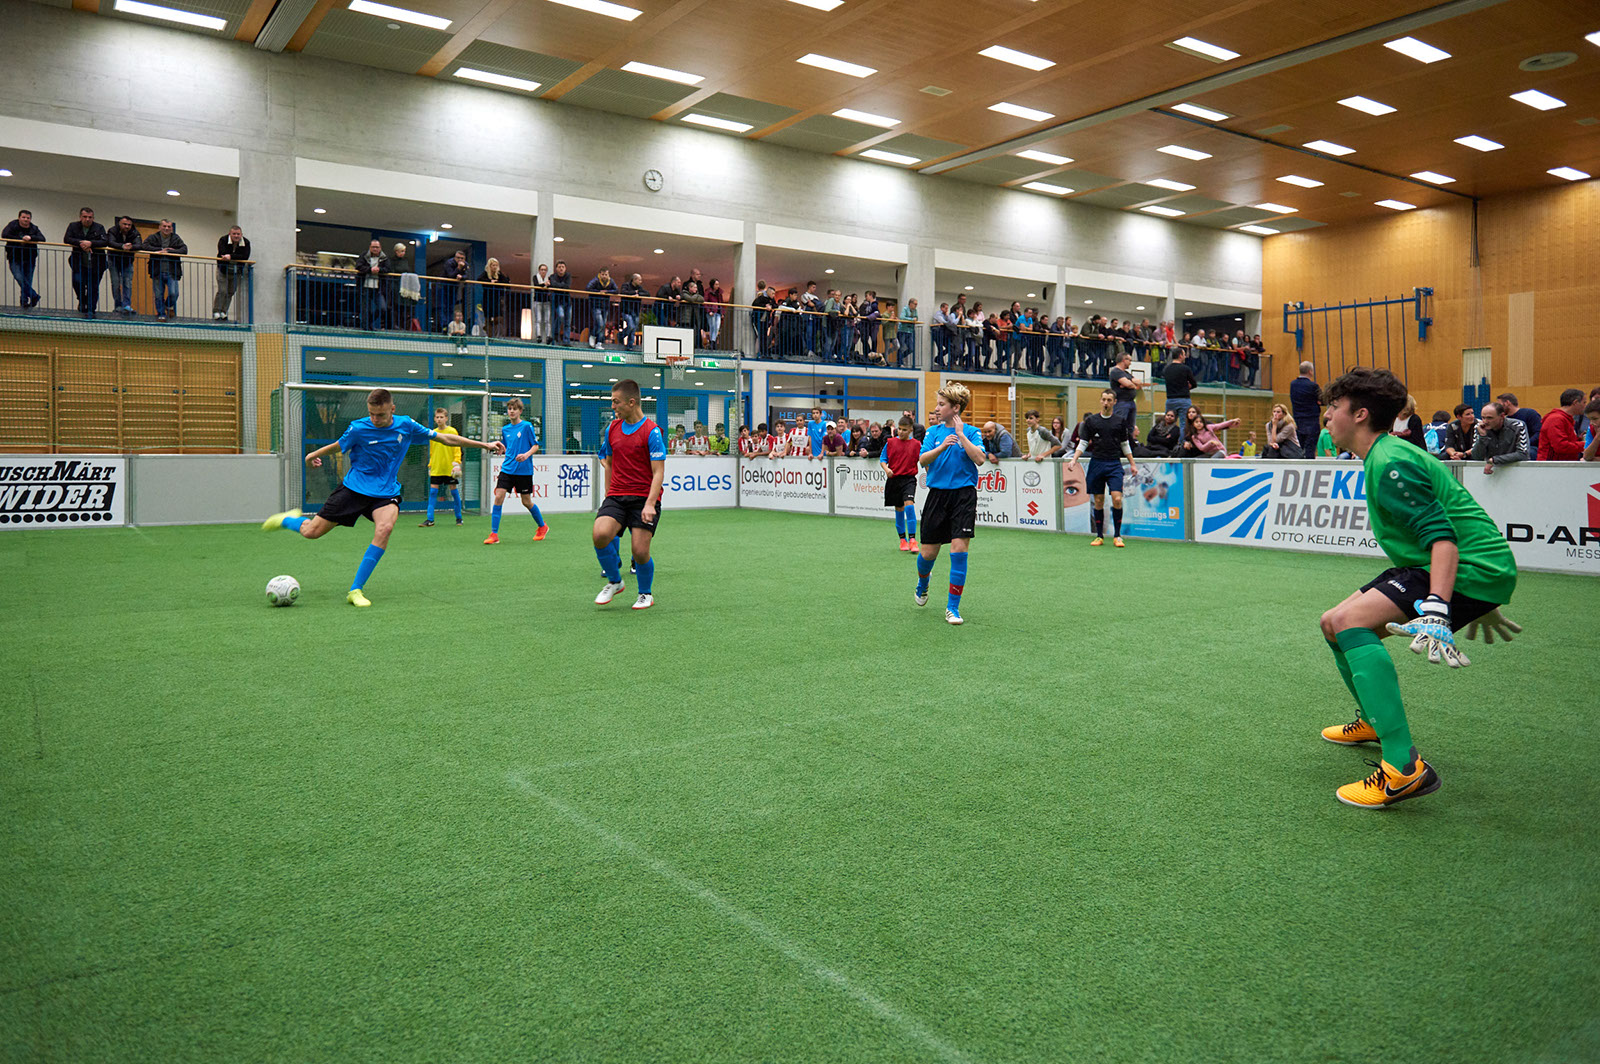 Bodensee-Cup_20171111_220431.jpg